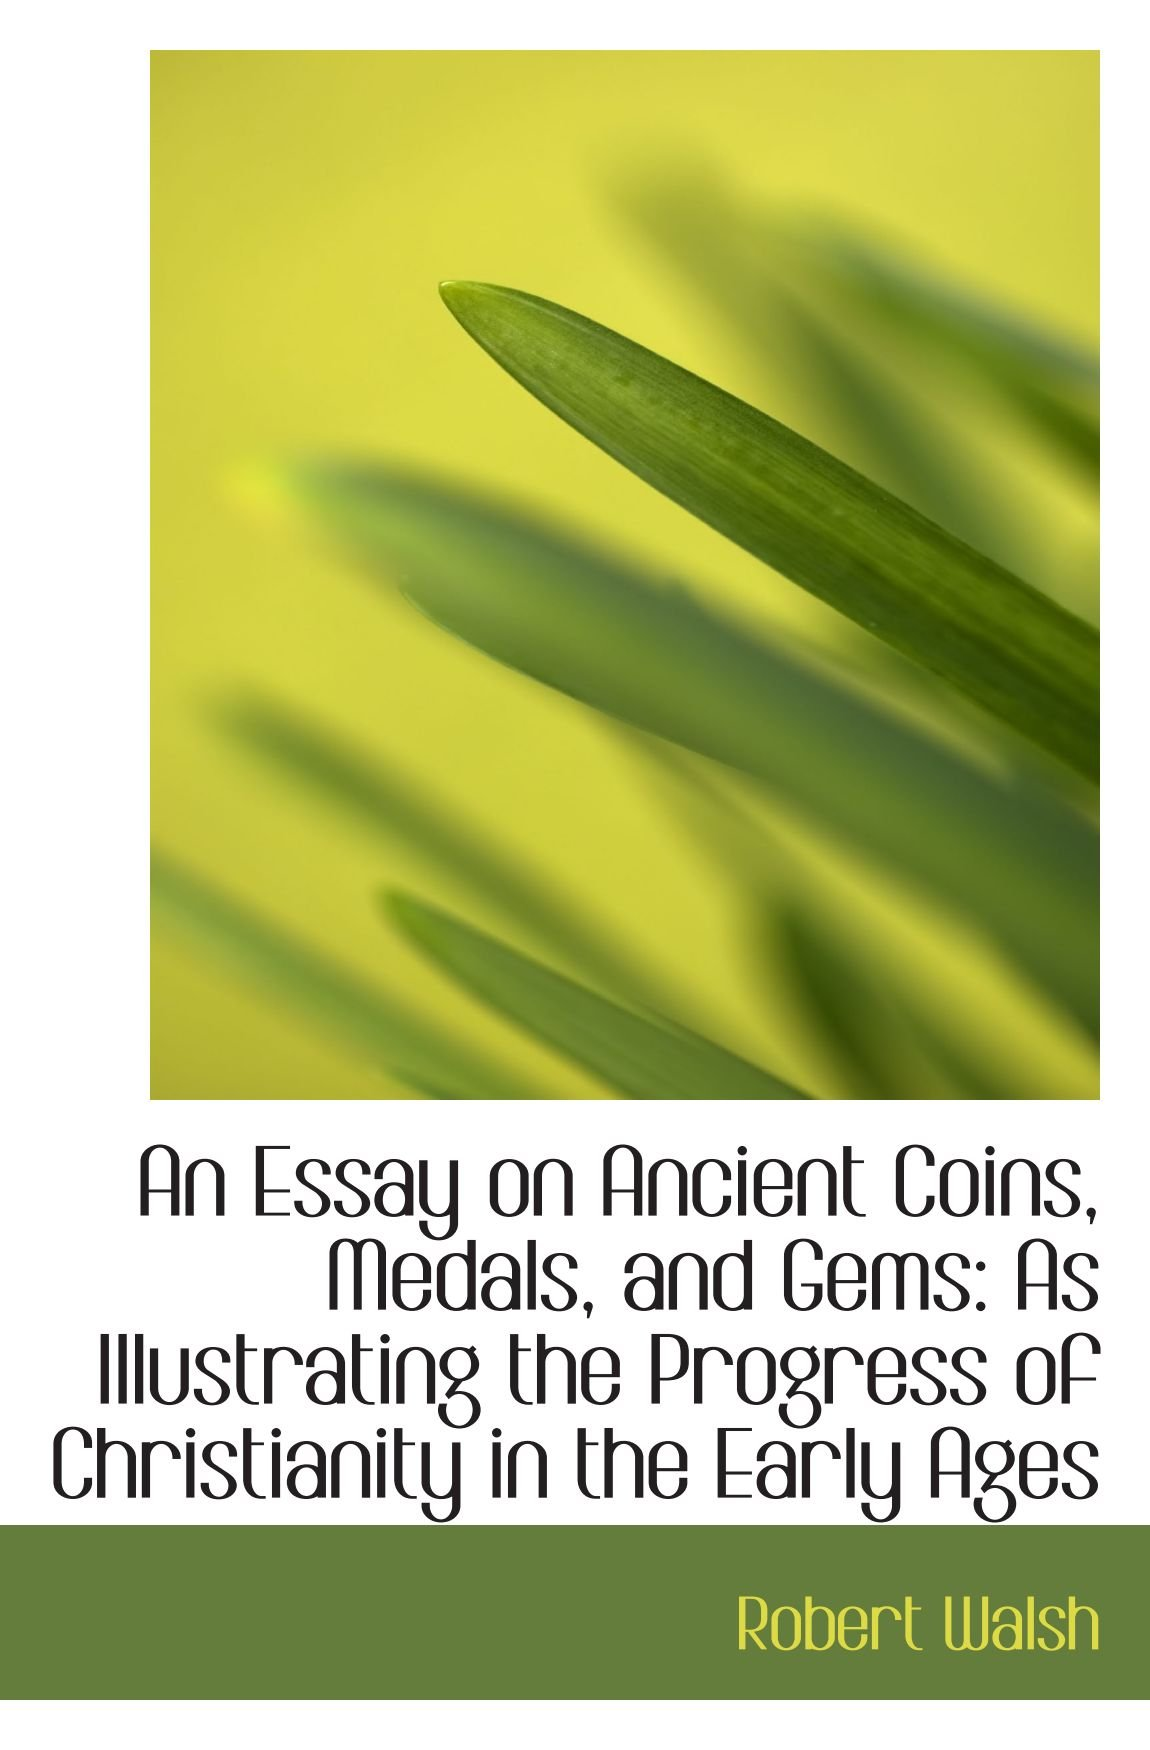 Read Online An Essay on Ancient Coins, Medals, and Gems: As Illustrating the Progress of Christianity in the Ear pdf